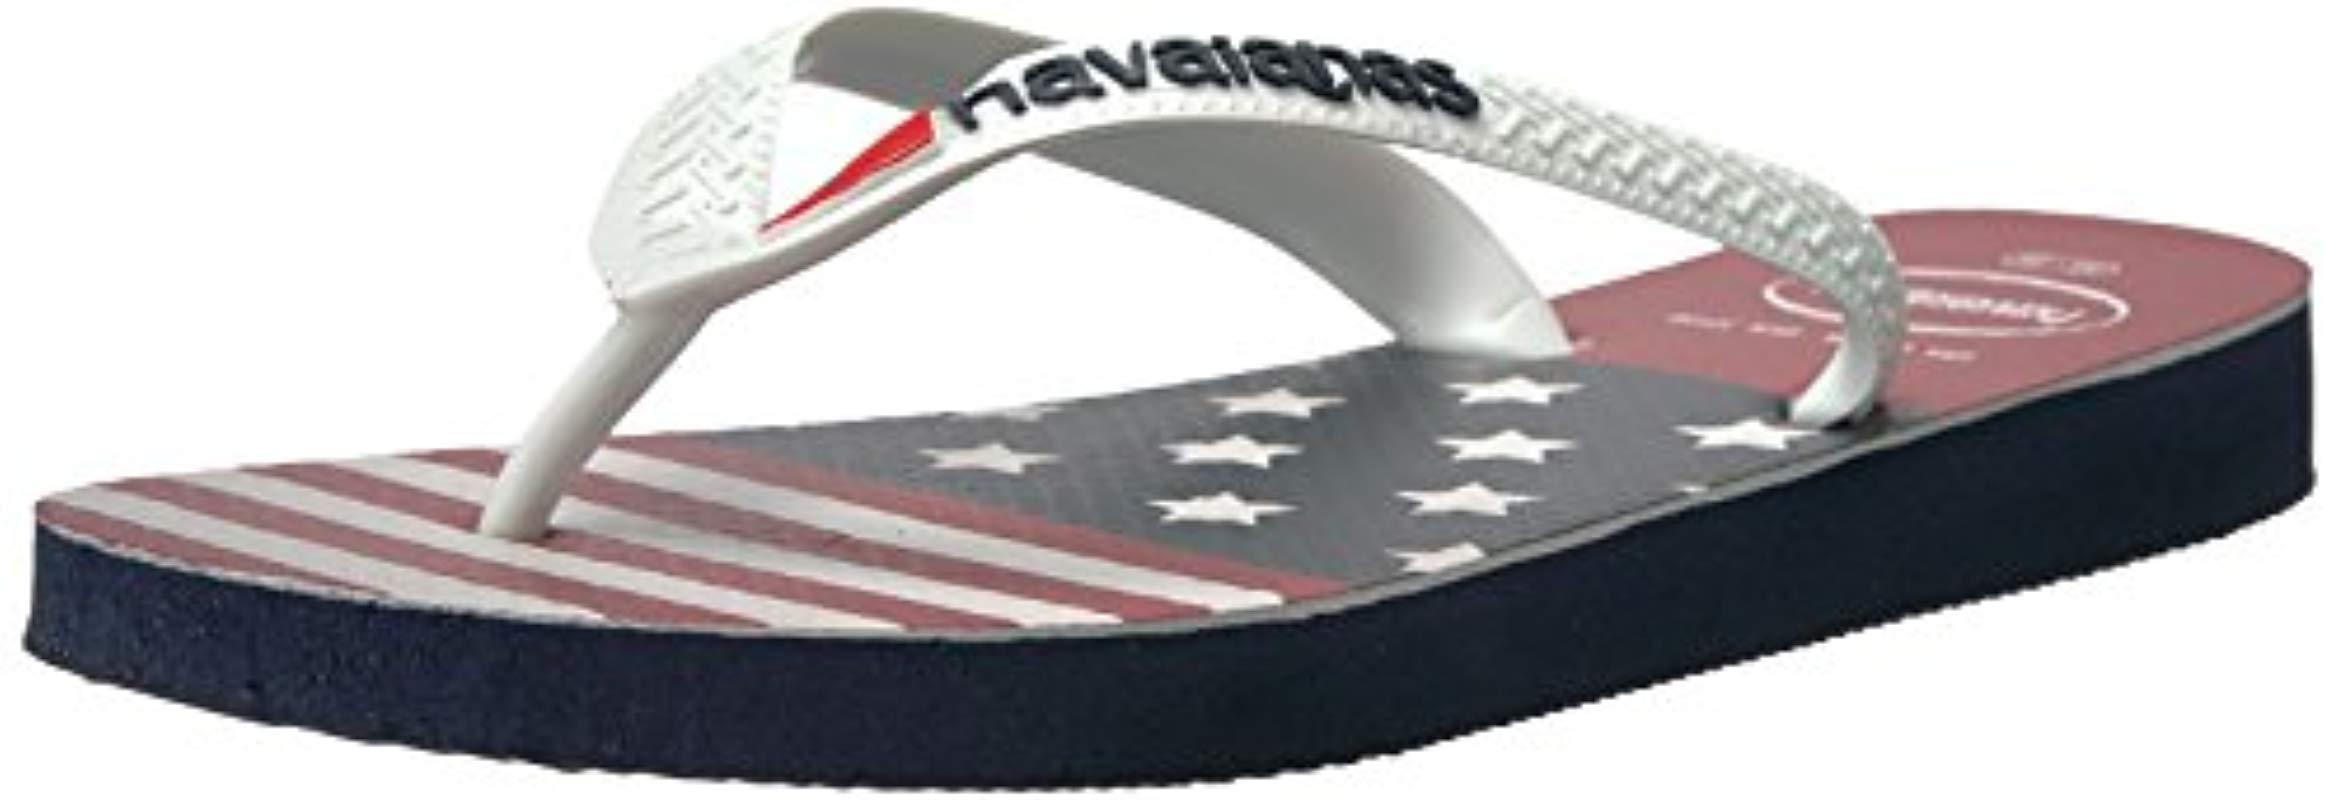 42a333386b6 Lyst - Havaianas Top Usa Stars And Stripes Sandal in Blue